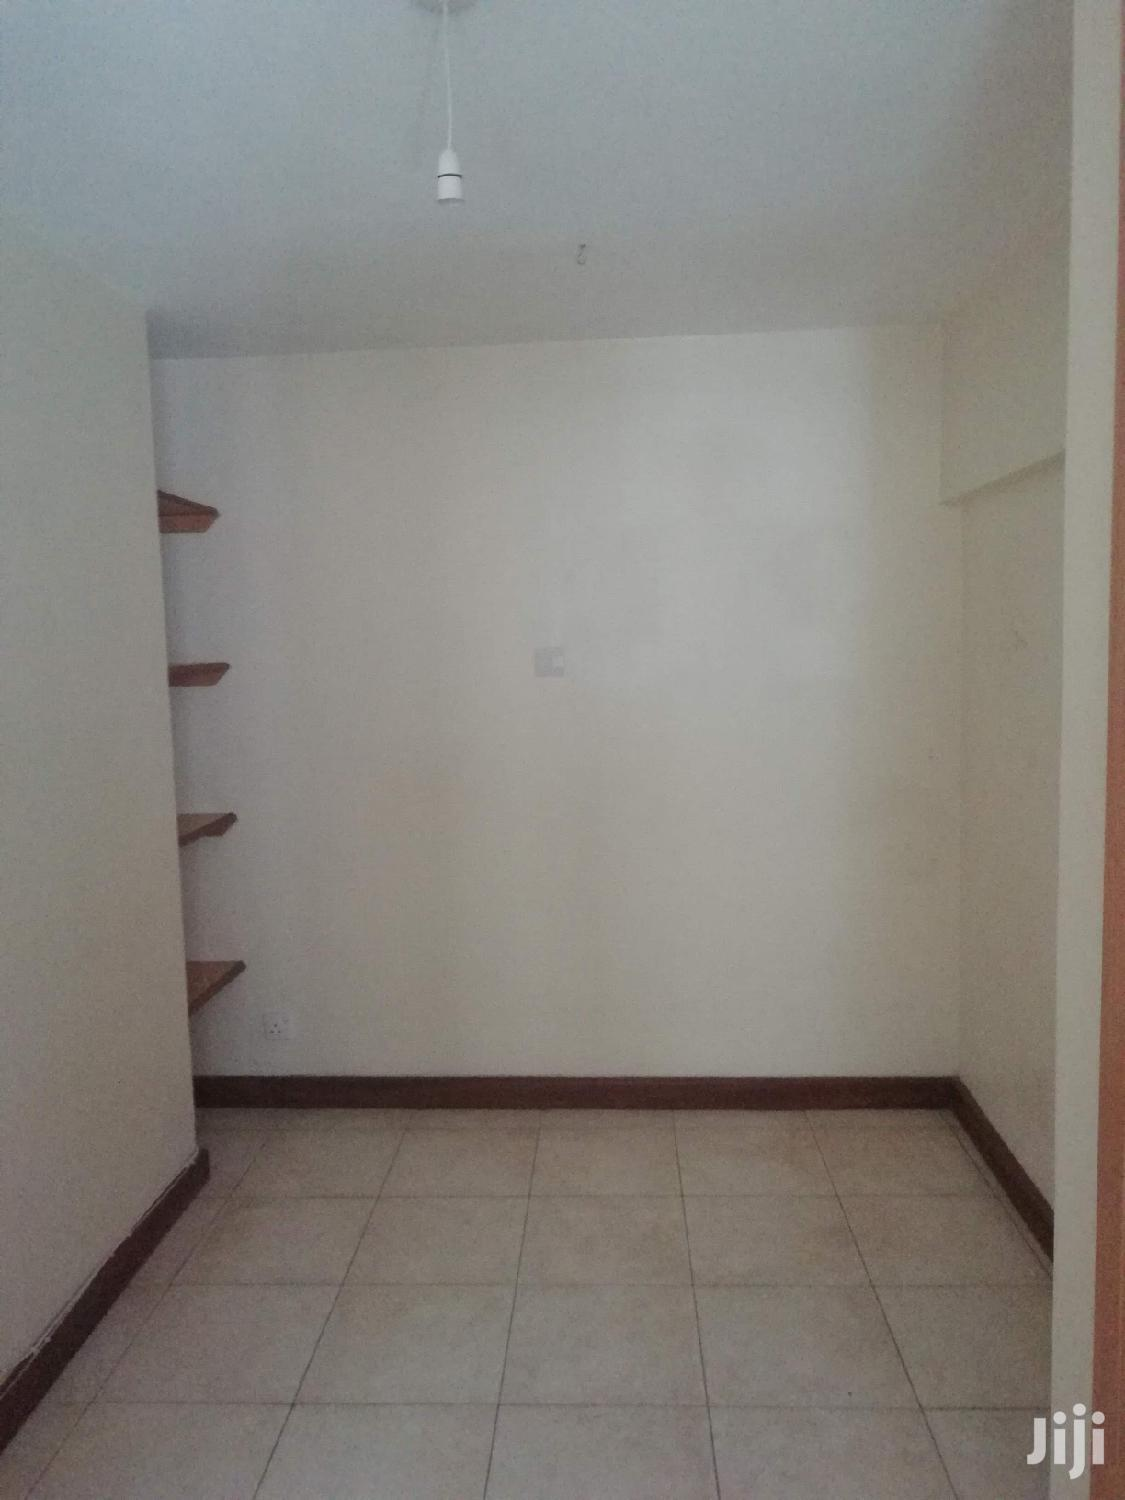 Property World,1br Apartment With Pool,Gym,Lift And Secure   Houses & Apartments For Rent for sale in Lavington, Nairobi, Kenya